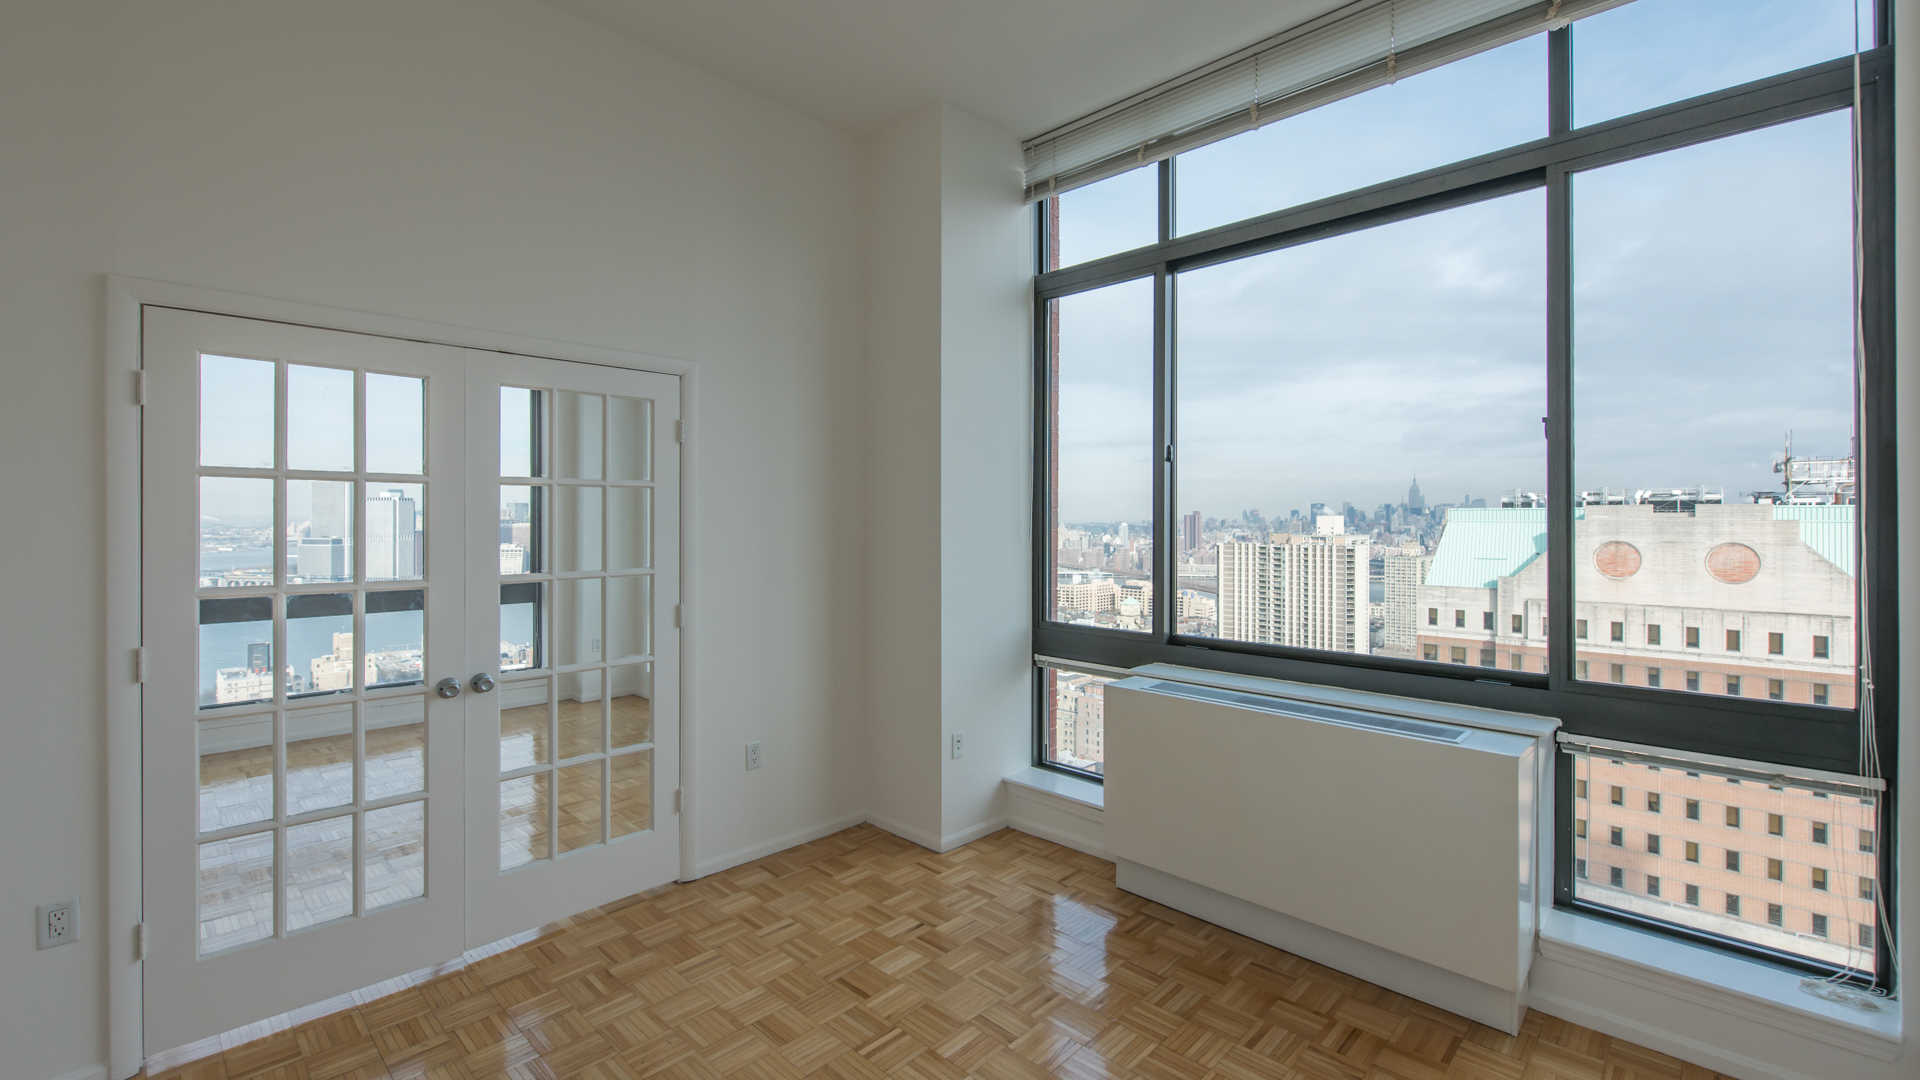 180 montague apartments bedroom with view